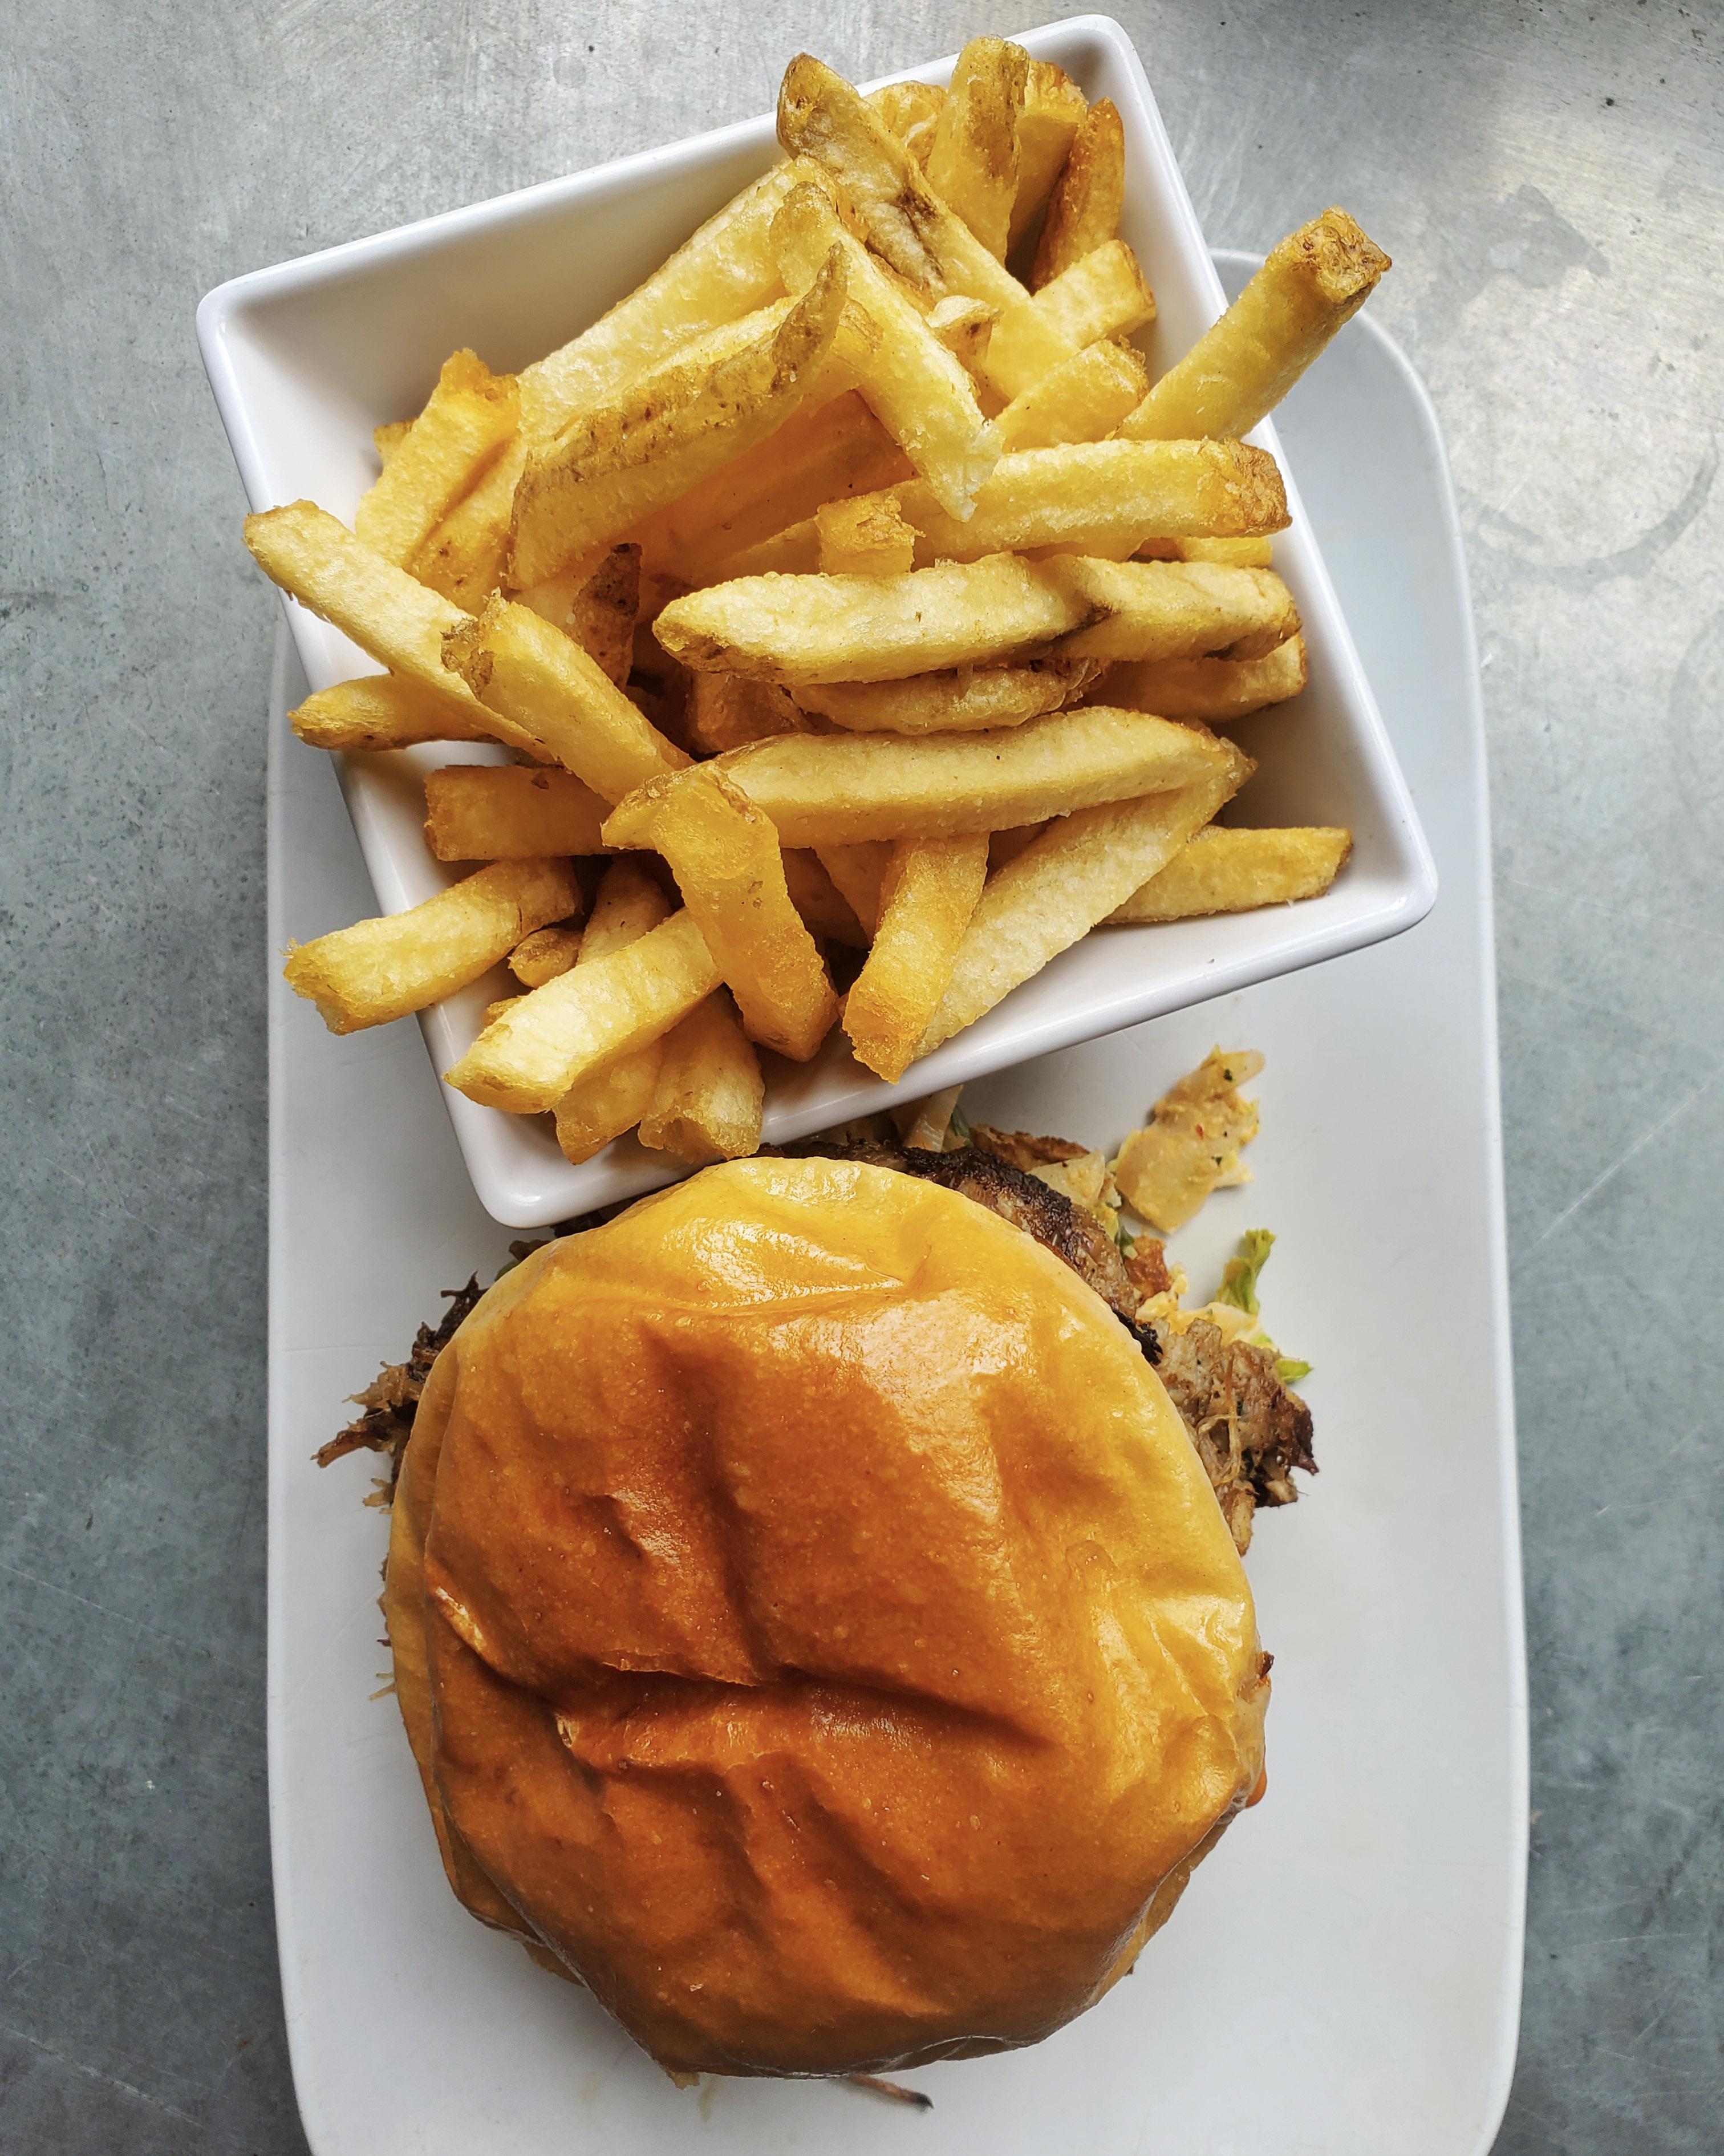 "You've probably heard of{&nbsp;}chef David Chang and his restaurants in New York and beyond. Well,{&nbsp;}<a  href=""http://uneedaburger.com/menu/"" target=""_blank"" title=""http://uneedaburger.com/menu/"">Uneeda Burger in Fremont</a>{&nbsp;}is bringing a bit of it to Seattle with the release of their new sandwich inspired by the uber-popular Korean dish, Bo Ssäm, Chang serves at his{&nbsp;}Momofuku Ssäm Bar in the East Village and elsewhere.{&nbsp;}Uneeda Burger's Pork Bo Ssäm Sandwich ($13) is stacked with{&nbsp;}sweet and savory pulled pork, kimchi slaw, pickled scallion relish and Bo Ssäm sauce. Add fries, a green salad or cheese curds on the side for an additional cost.{&nbsp;}Uneeda Burger is open for takeout, and{&nbsp;}<a  href=""https://direct.chownow.com/order/10126/locations/13876"" target=""_blank"" title=""https://direct.chownow.com/order/10126/locations/13876"">you can order exclusively online{&nbsp;}here</a>. (Image:{&nbsp;}Photos courtesy of Uneeda Burger / Justin Oba){&nbsp;}"